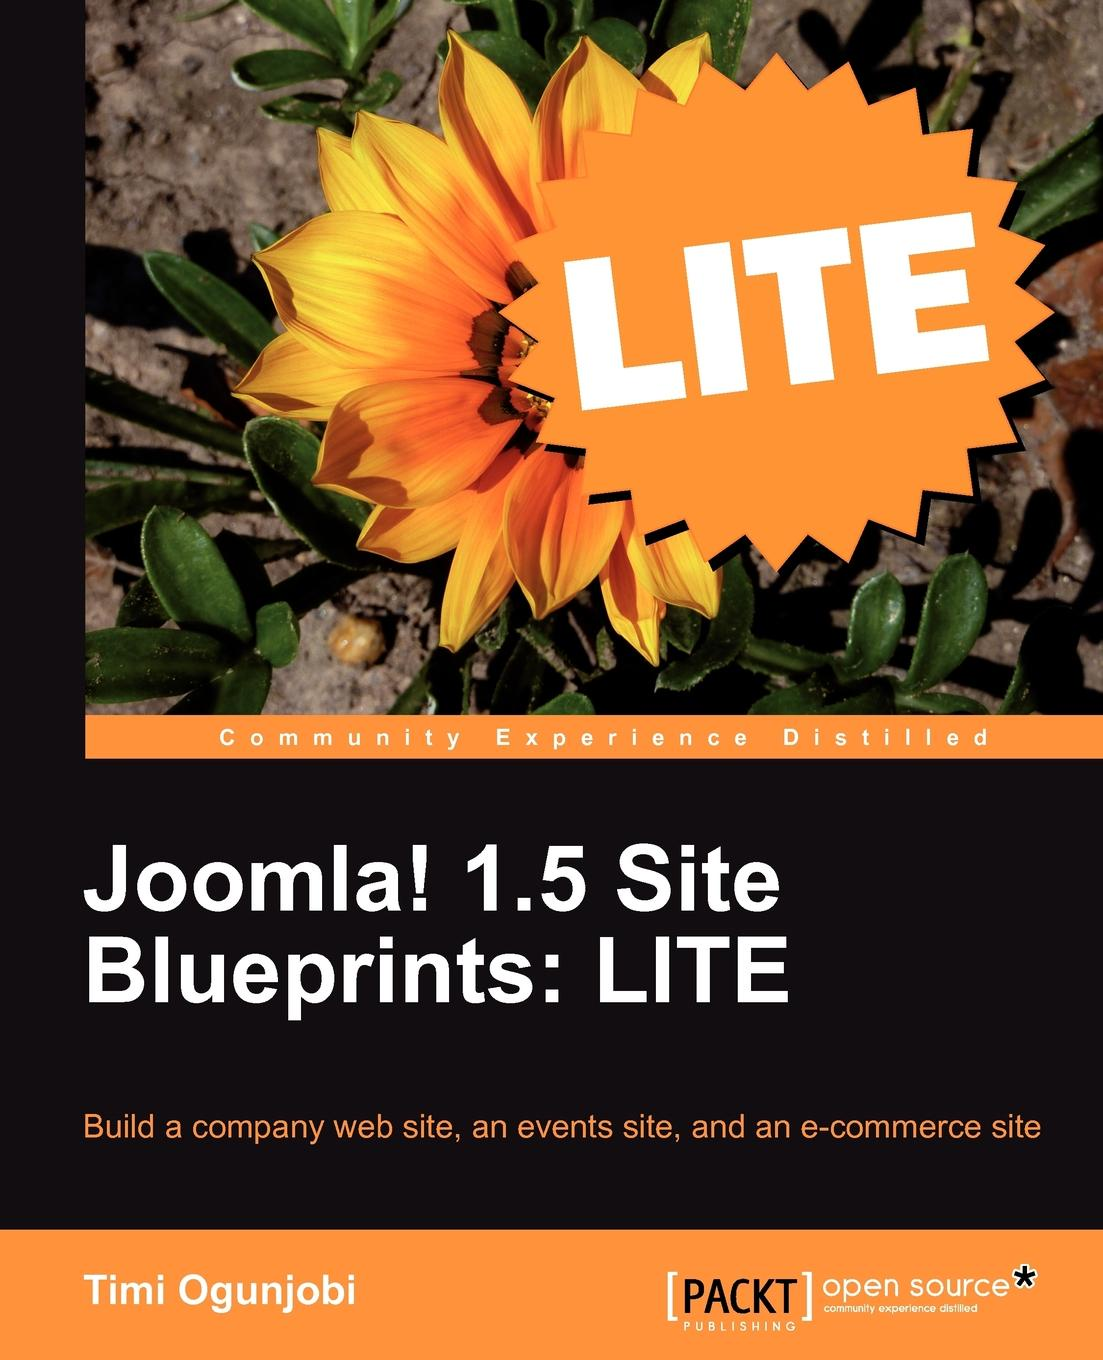 Timi Ogunjobi Joomla! 1.5 Site Blueprints Lite. Build a Company Web Site, an Events Site, and an Ecommerce Site накладной хвост bei site